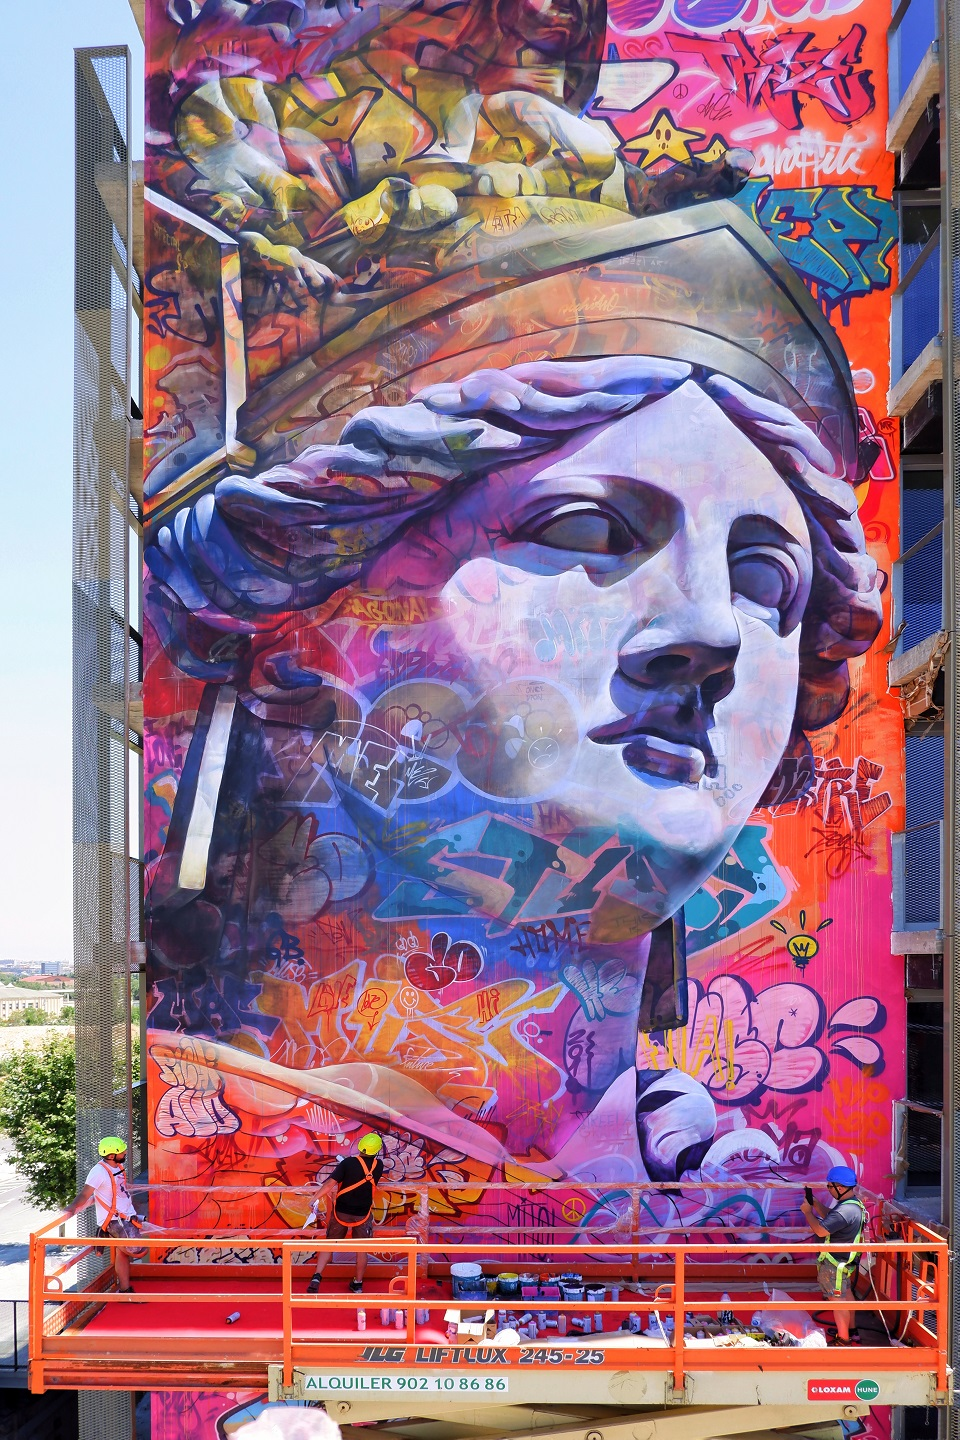 Mural by PichiAvo - In Barcelona, Spain